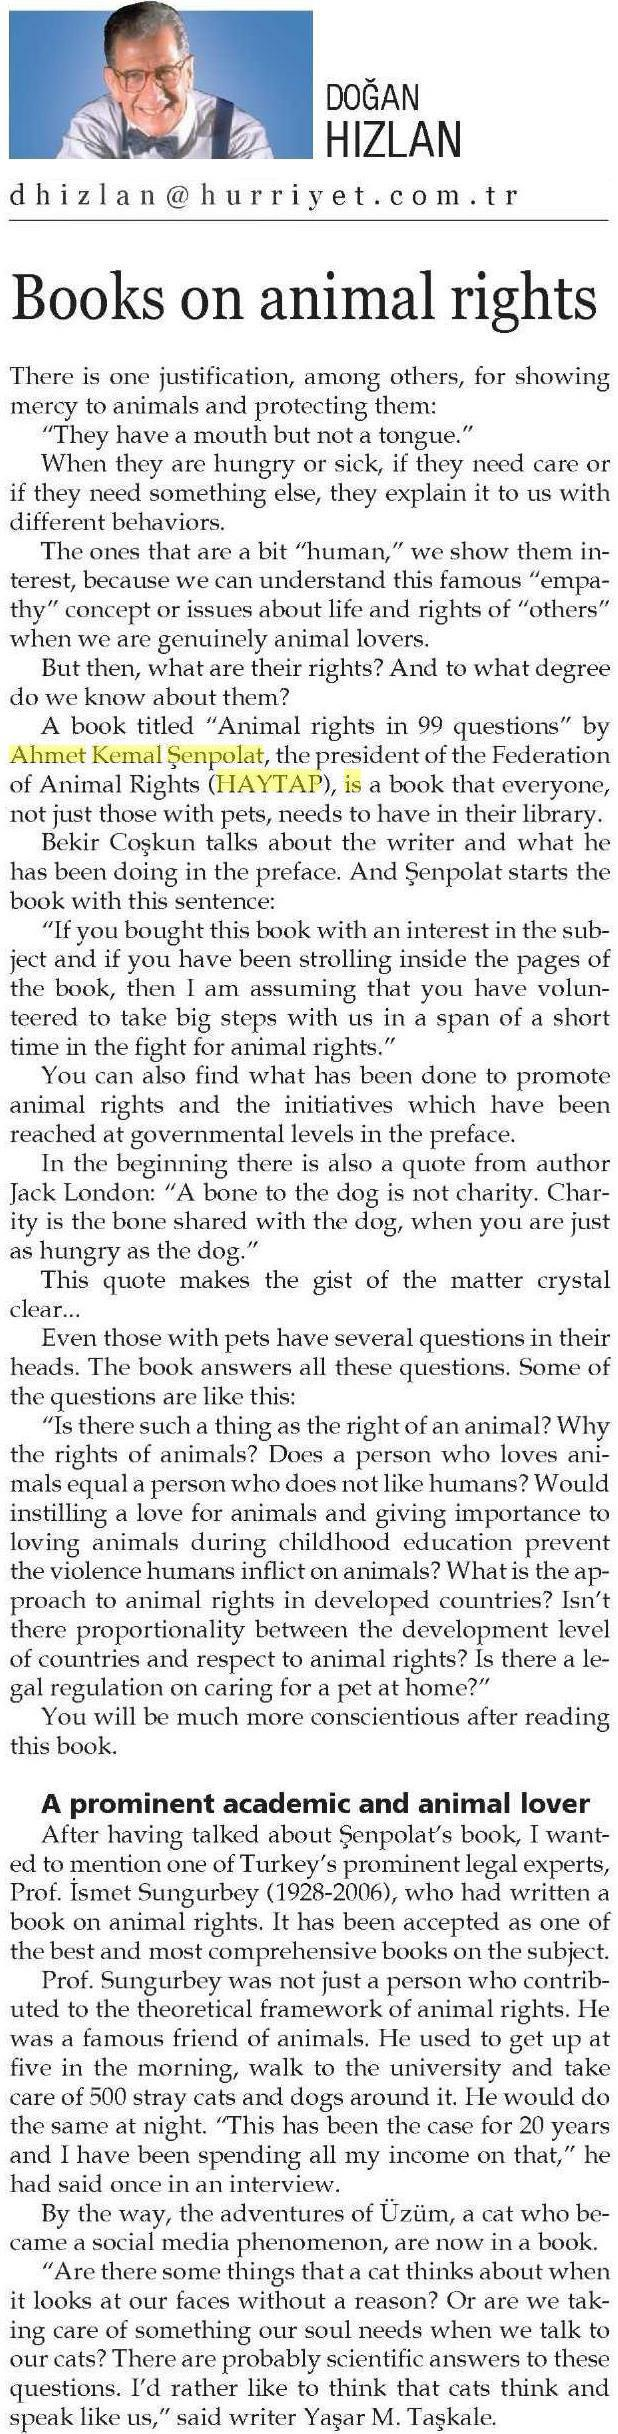 Books on animal rights